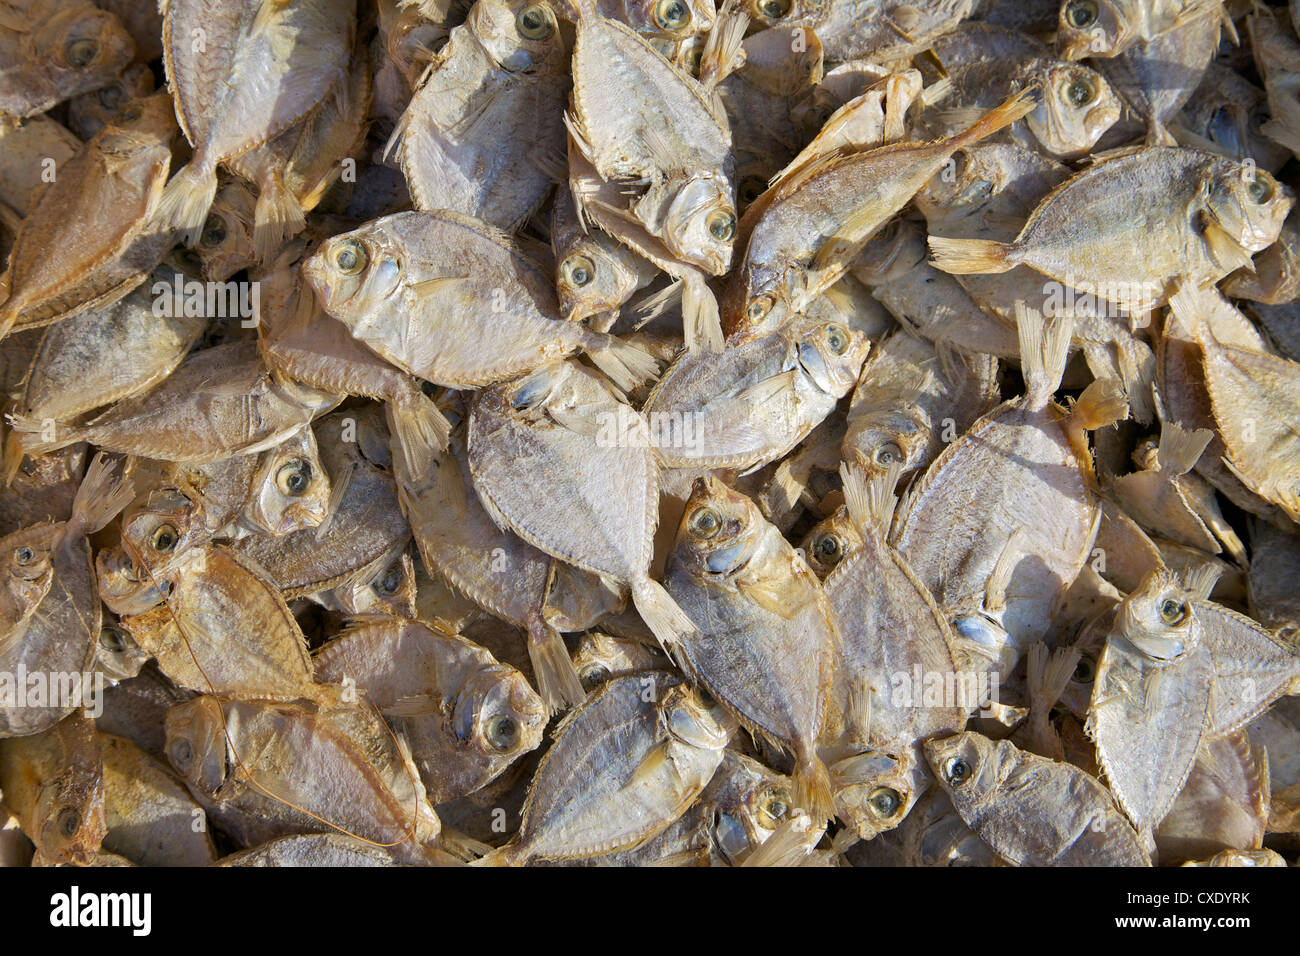 Dried fish for sale on market stall, Nilaveli, Trincomalee,  Sri Lanka, Asia - Stock Image